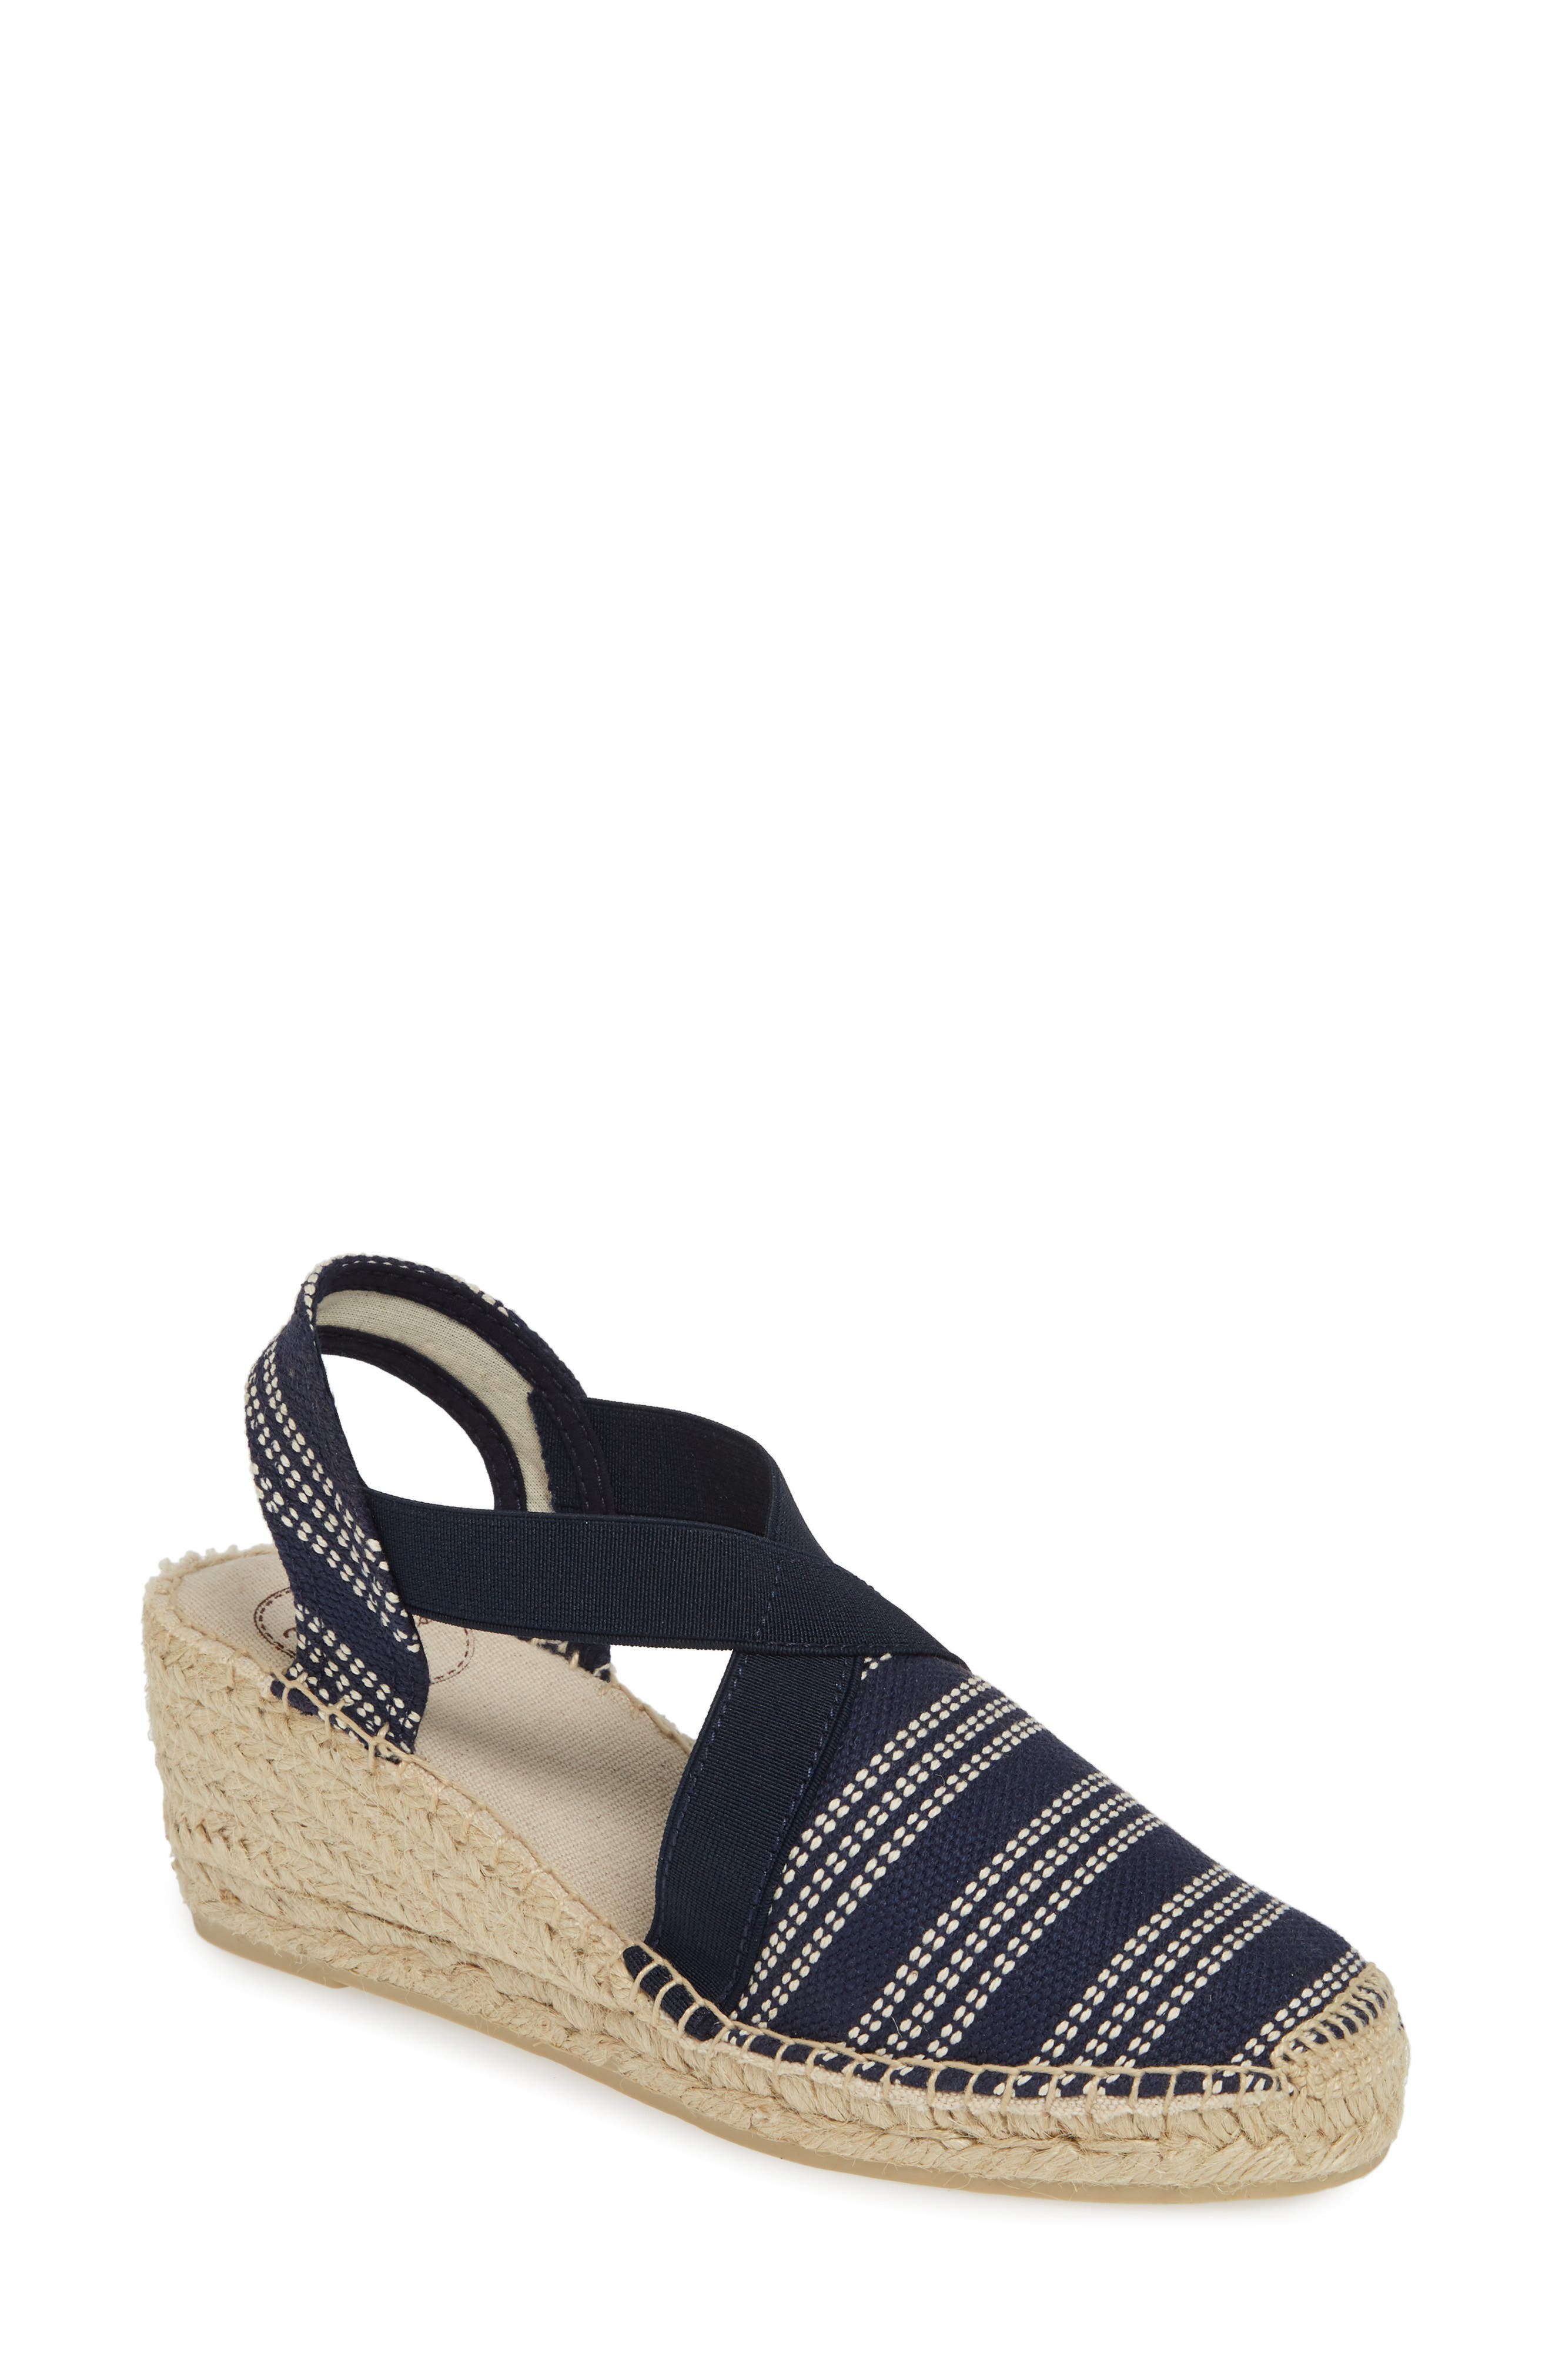 A slingback strap and bold espadrille heel heighten the earthy sophistication of a canvas sandal styled with crisp stripes. Style Name: Toni Pons \\\'Tarbes\\\' Espadrille Wedge Sandal (Women). Style Number: 1056900 2. Available in stores.